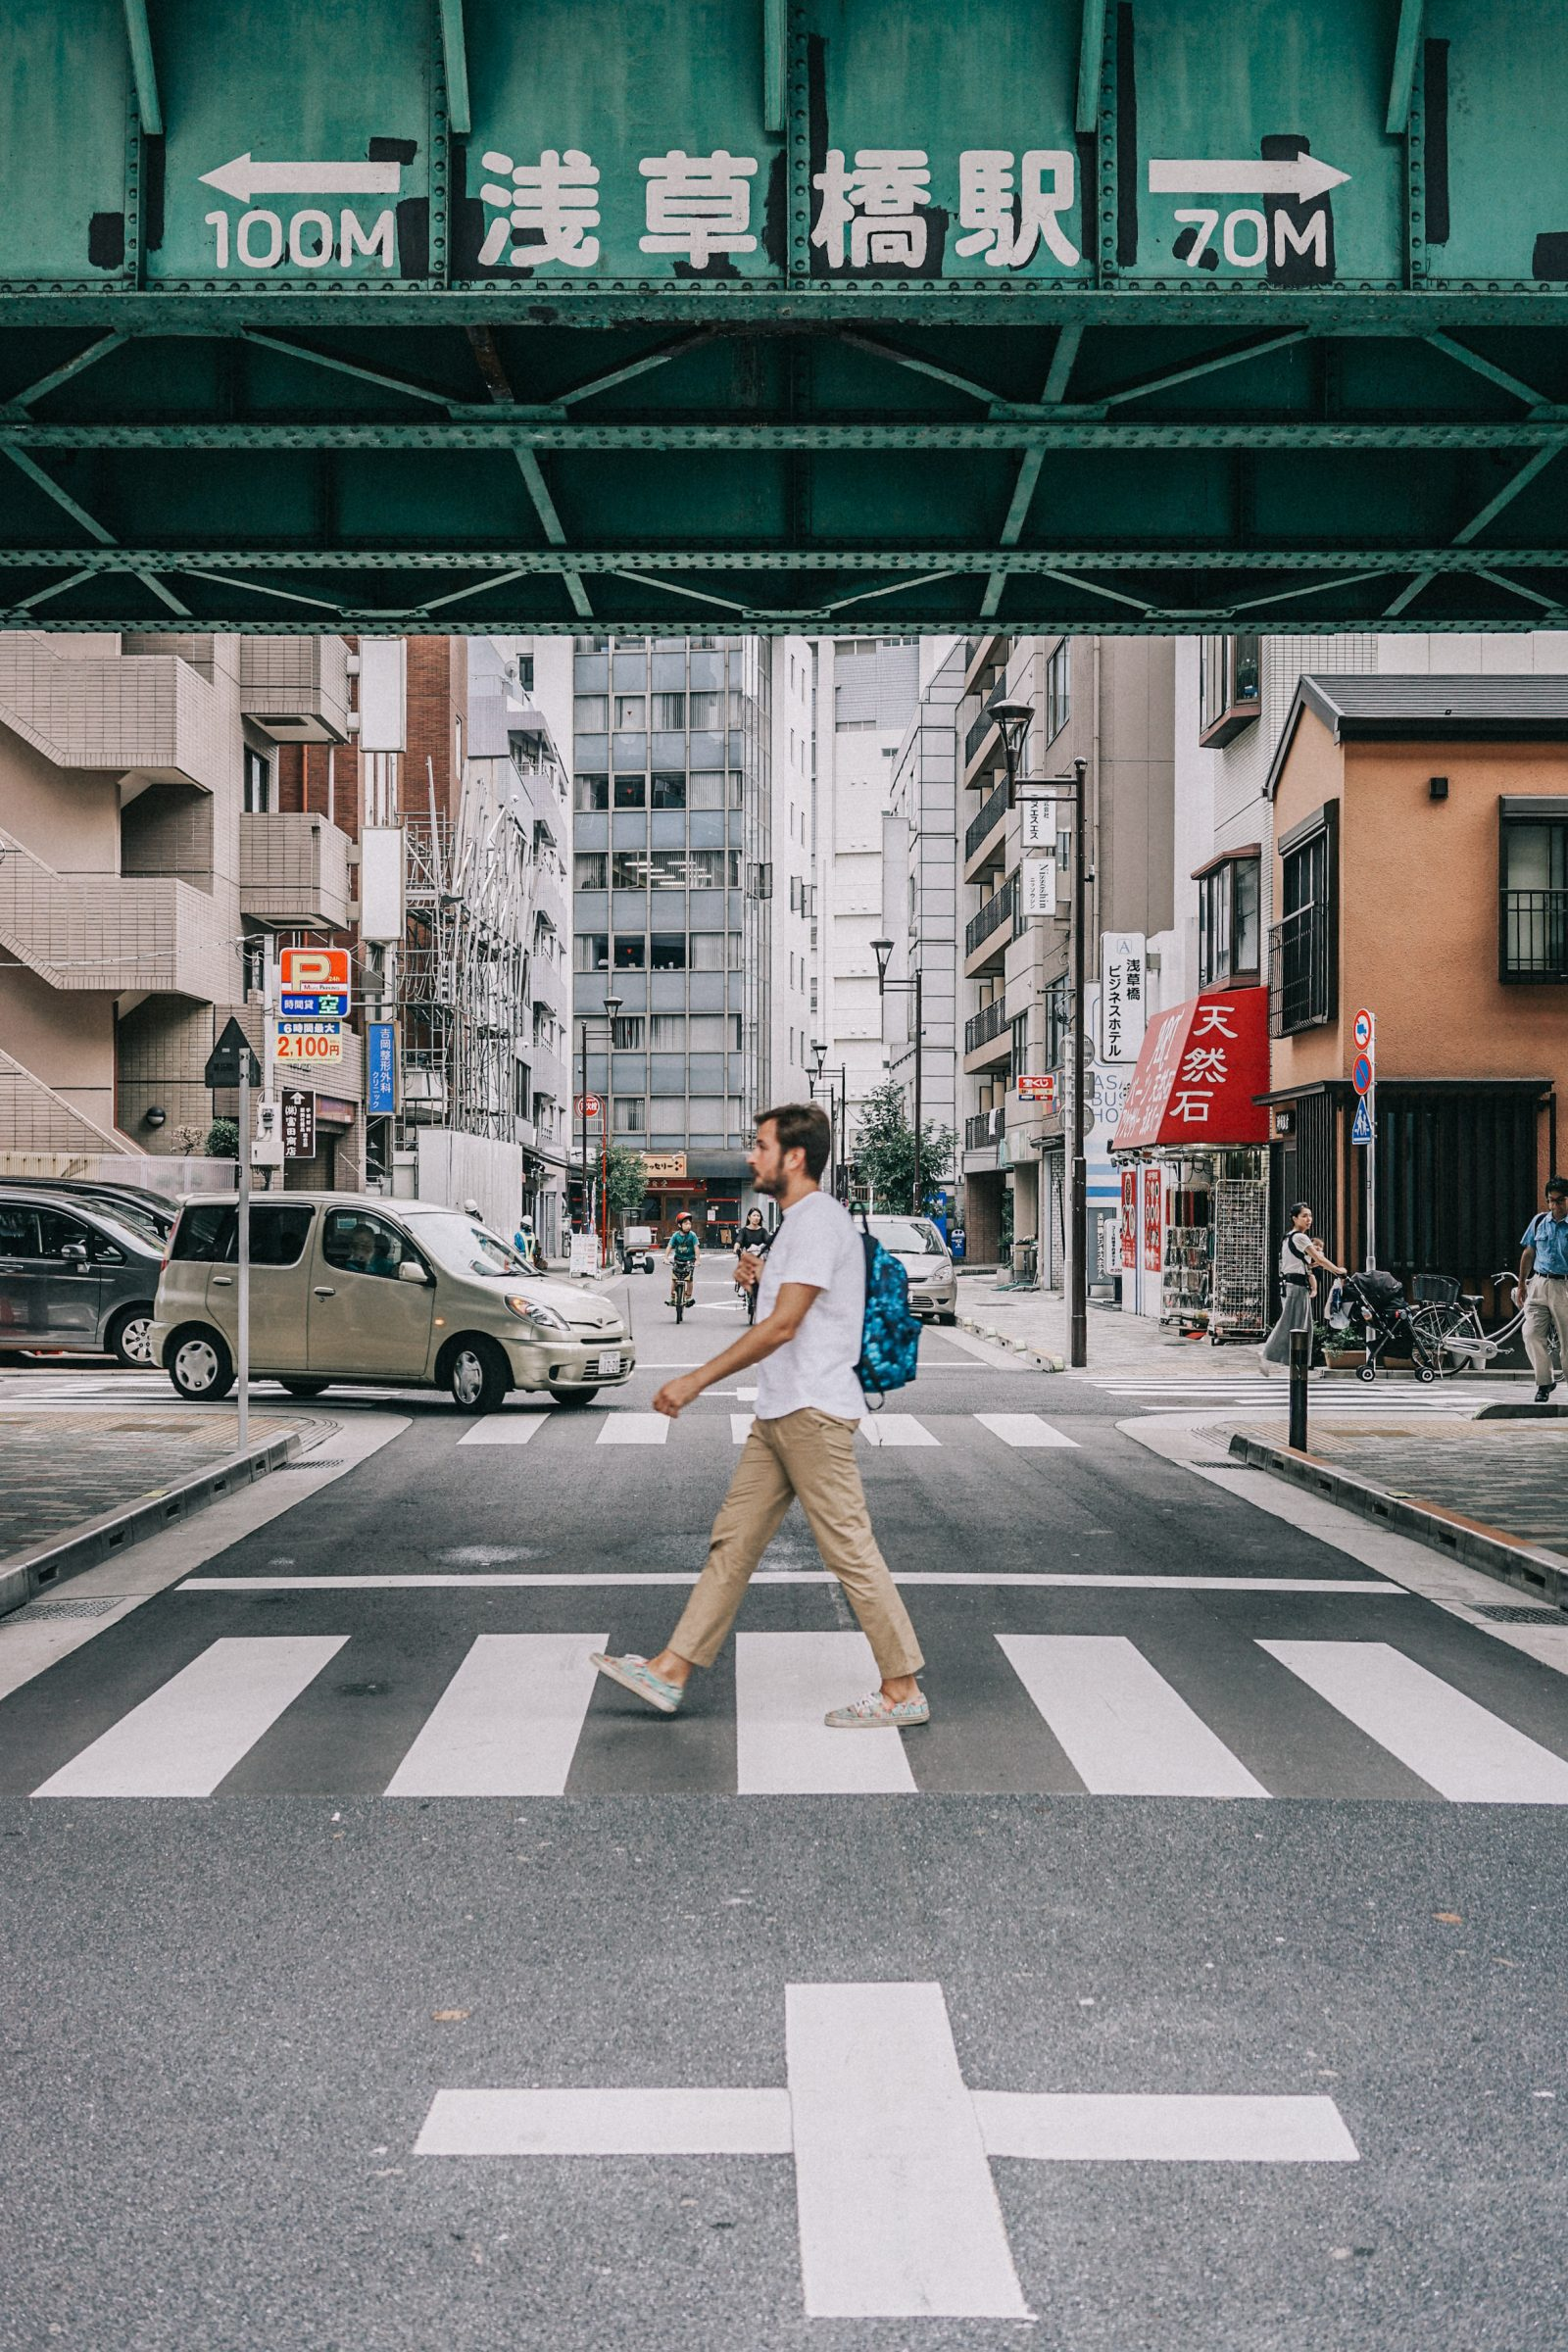 tokyo_travel_guide-outfit-collage_vintage-street_style-lovers_and_friends_jumpsuit-white_outfit-espadrilles-backpack-levis_denim_jacket-akihabara-106